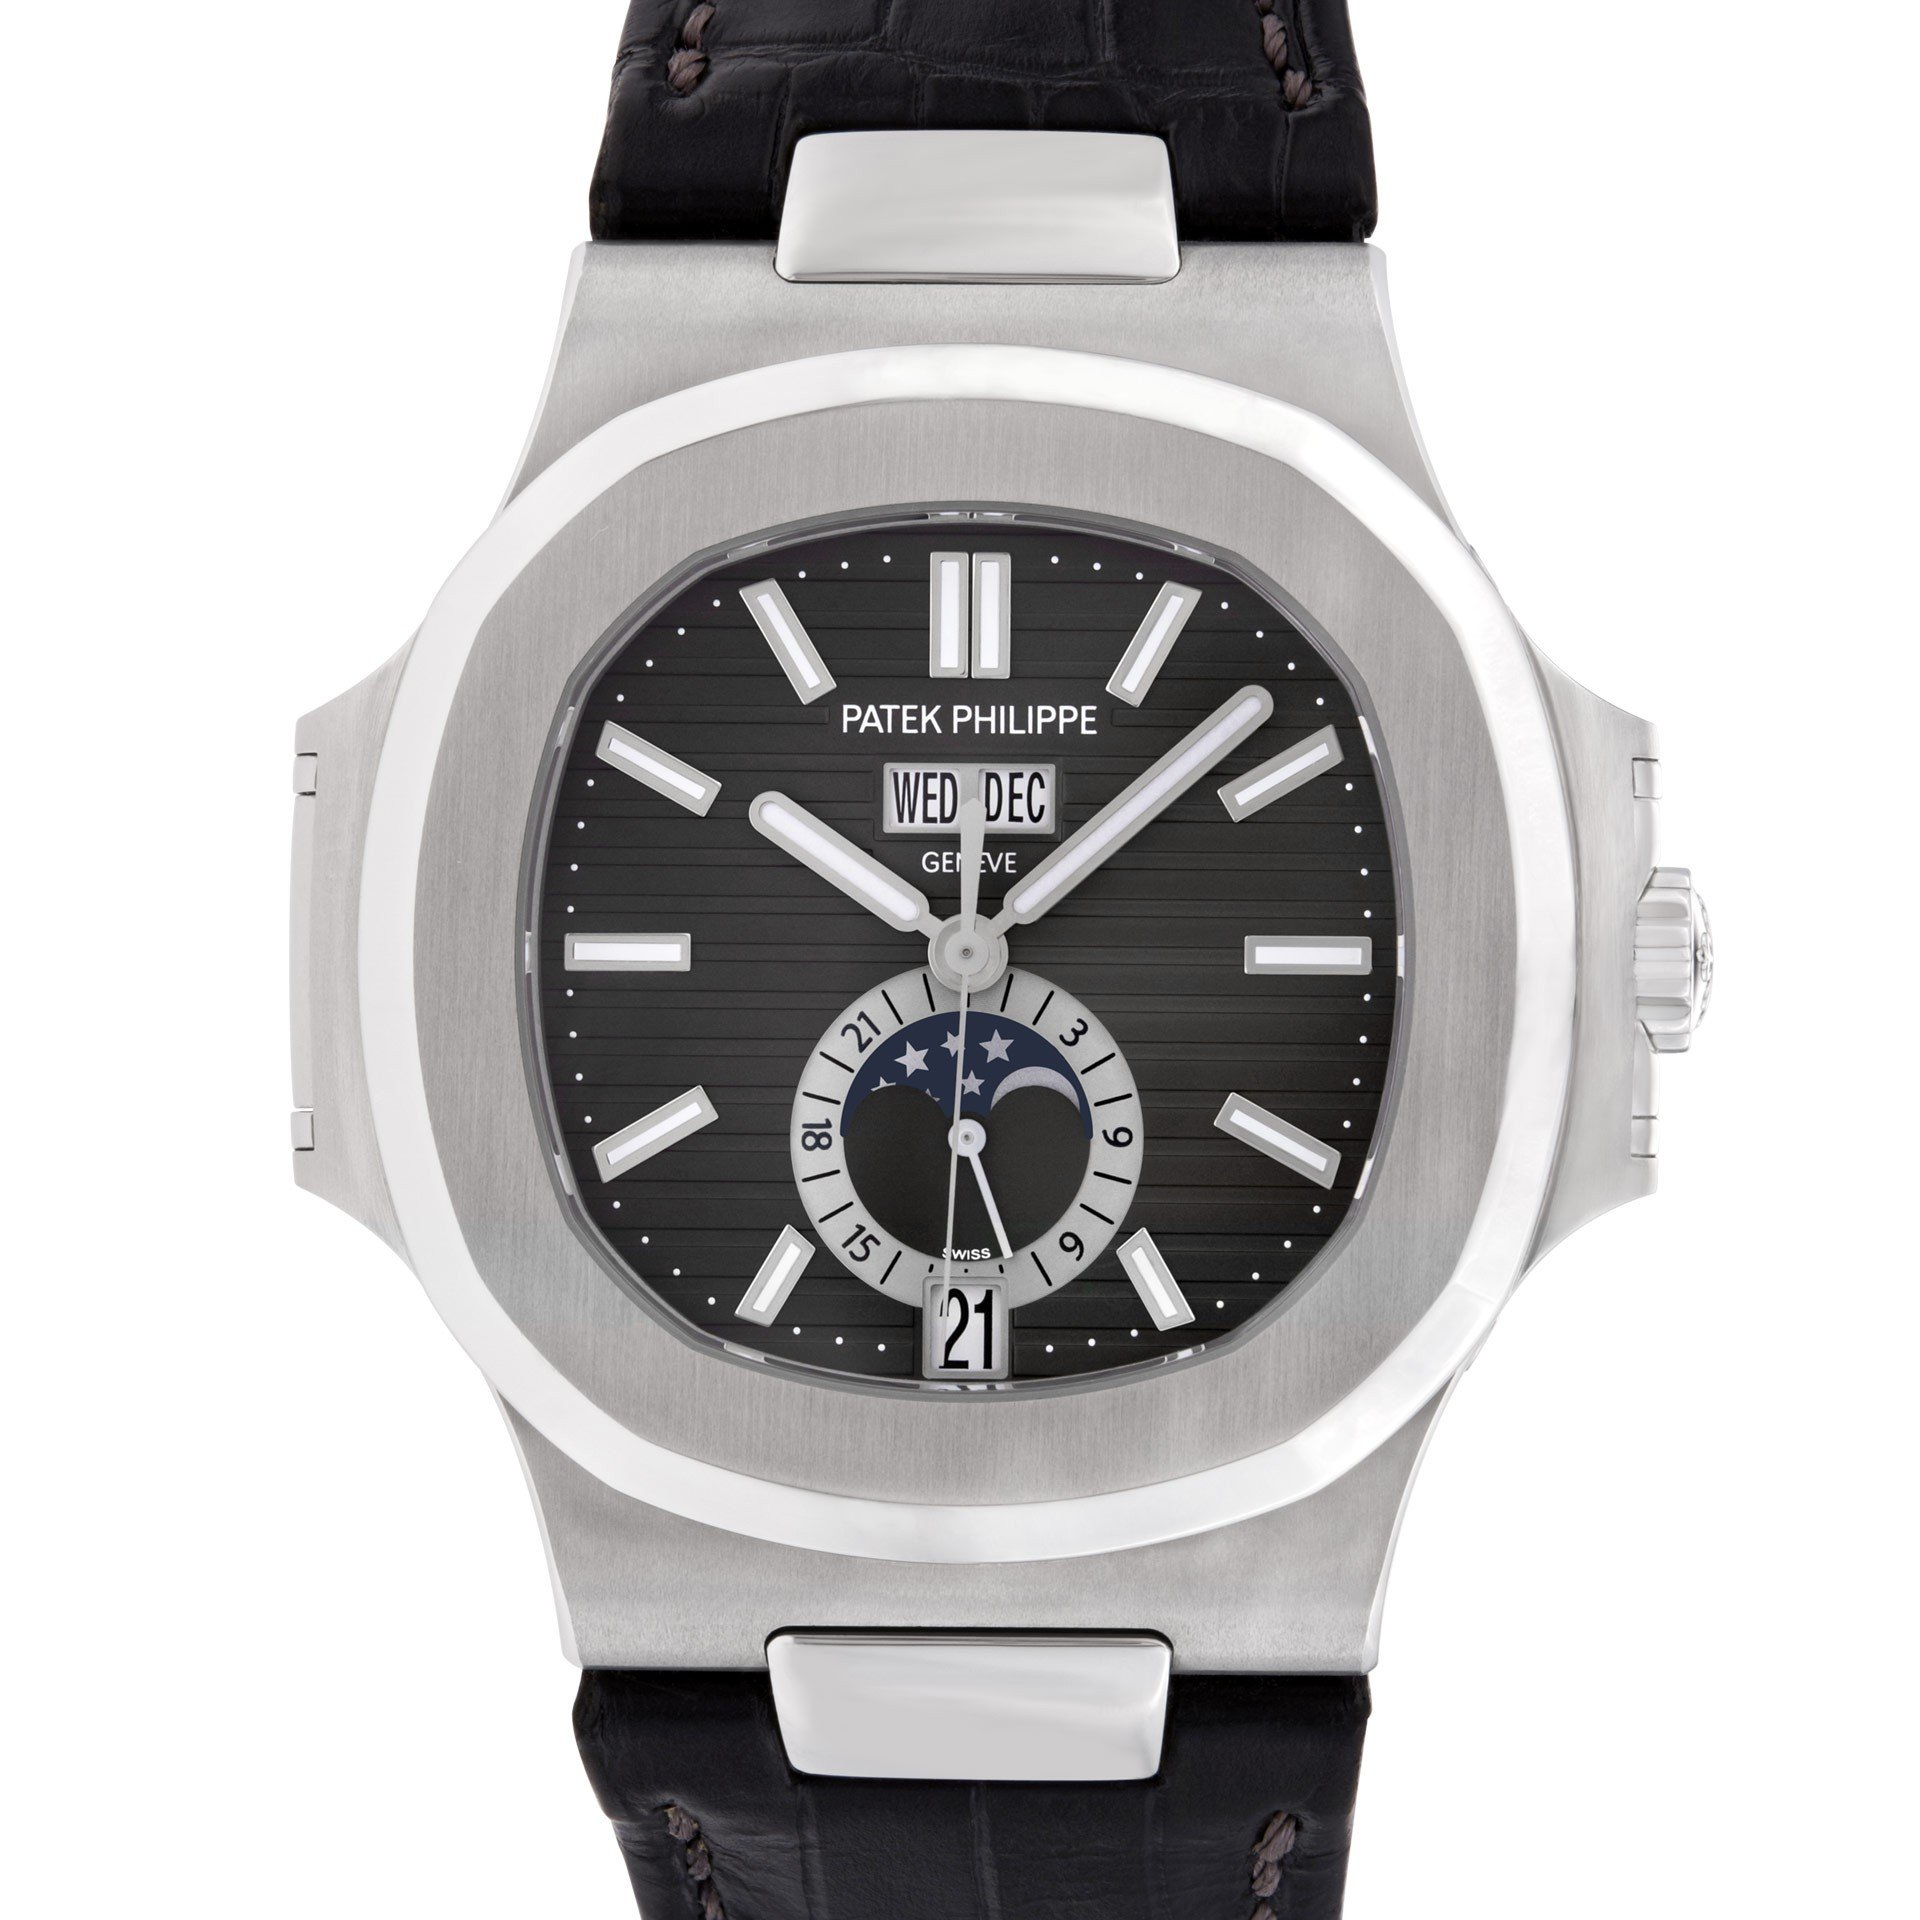 Patek philippe nautilus annual calendar ref 5726 gray sons for Patek philippe